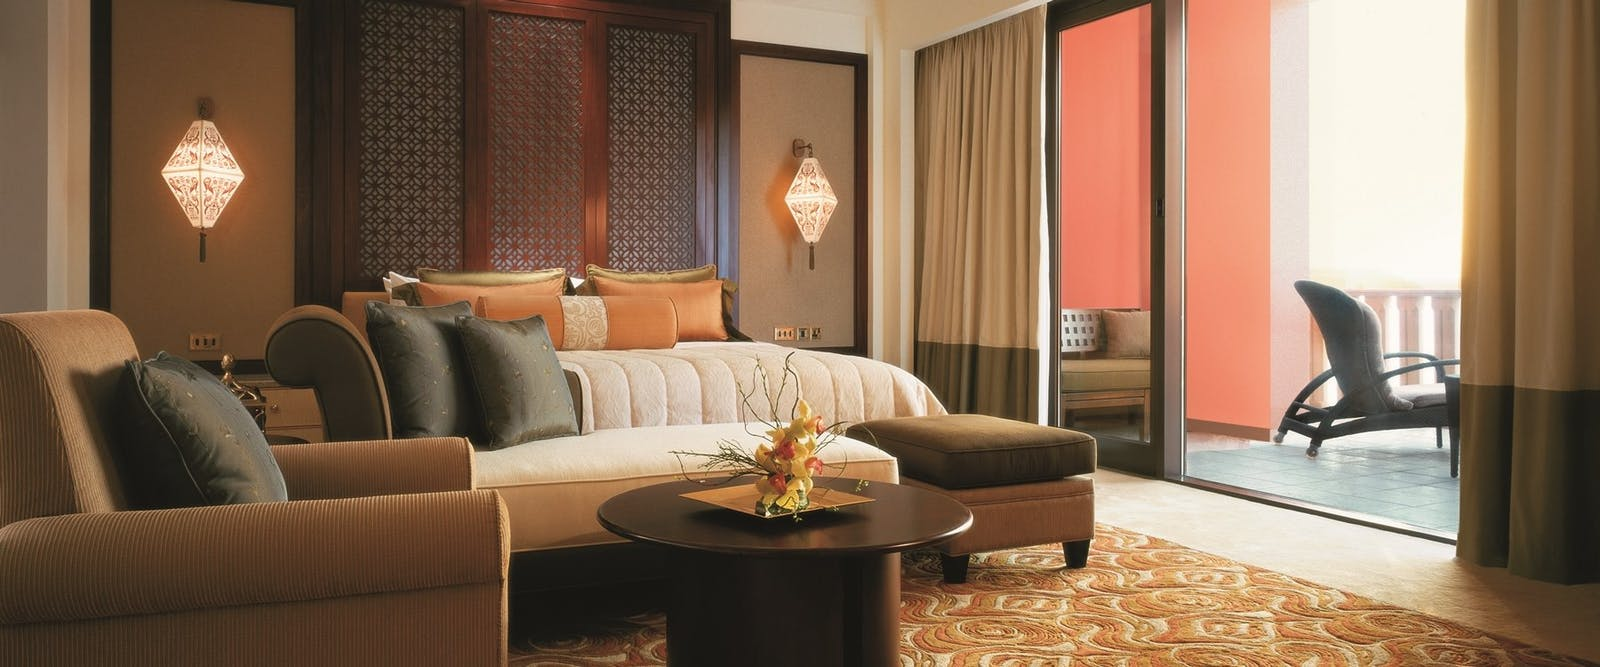 Specialty suite bedroom at Shangri-La's Al Husn Resort & Spa